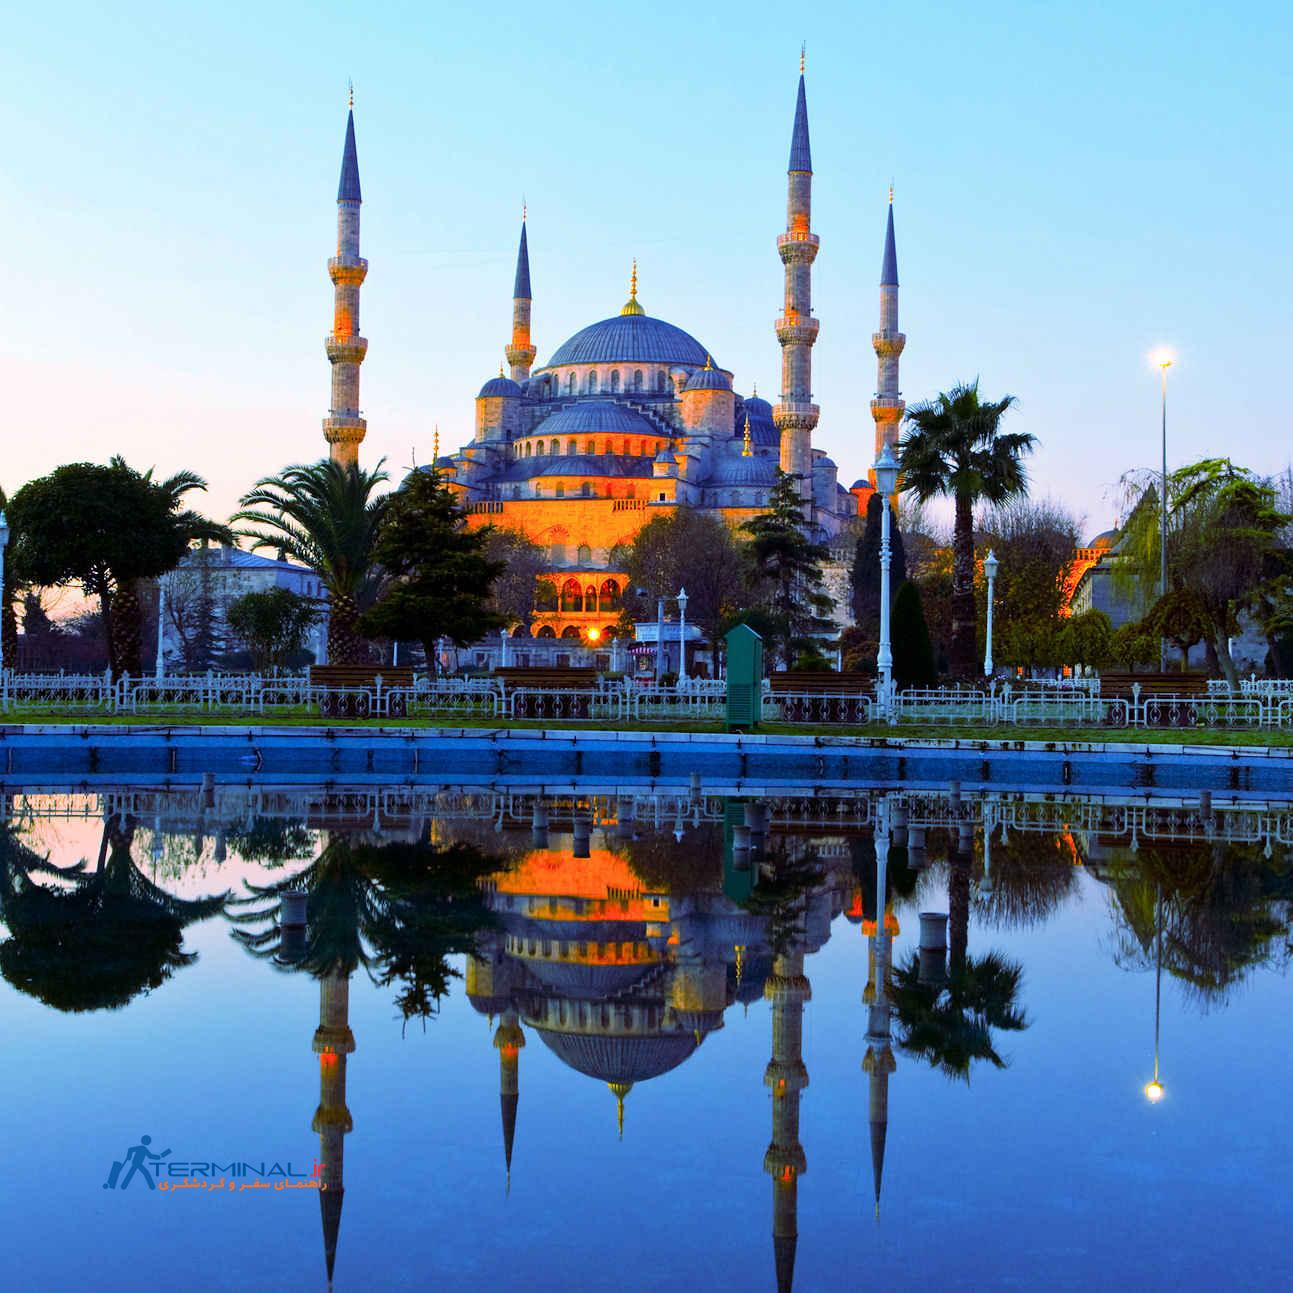 http://terminal.ir/wp-content/uploads/2015/12/1244743003istanbul-blue-mosque-sq.jpg